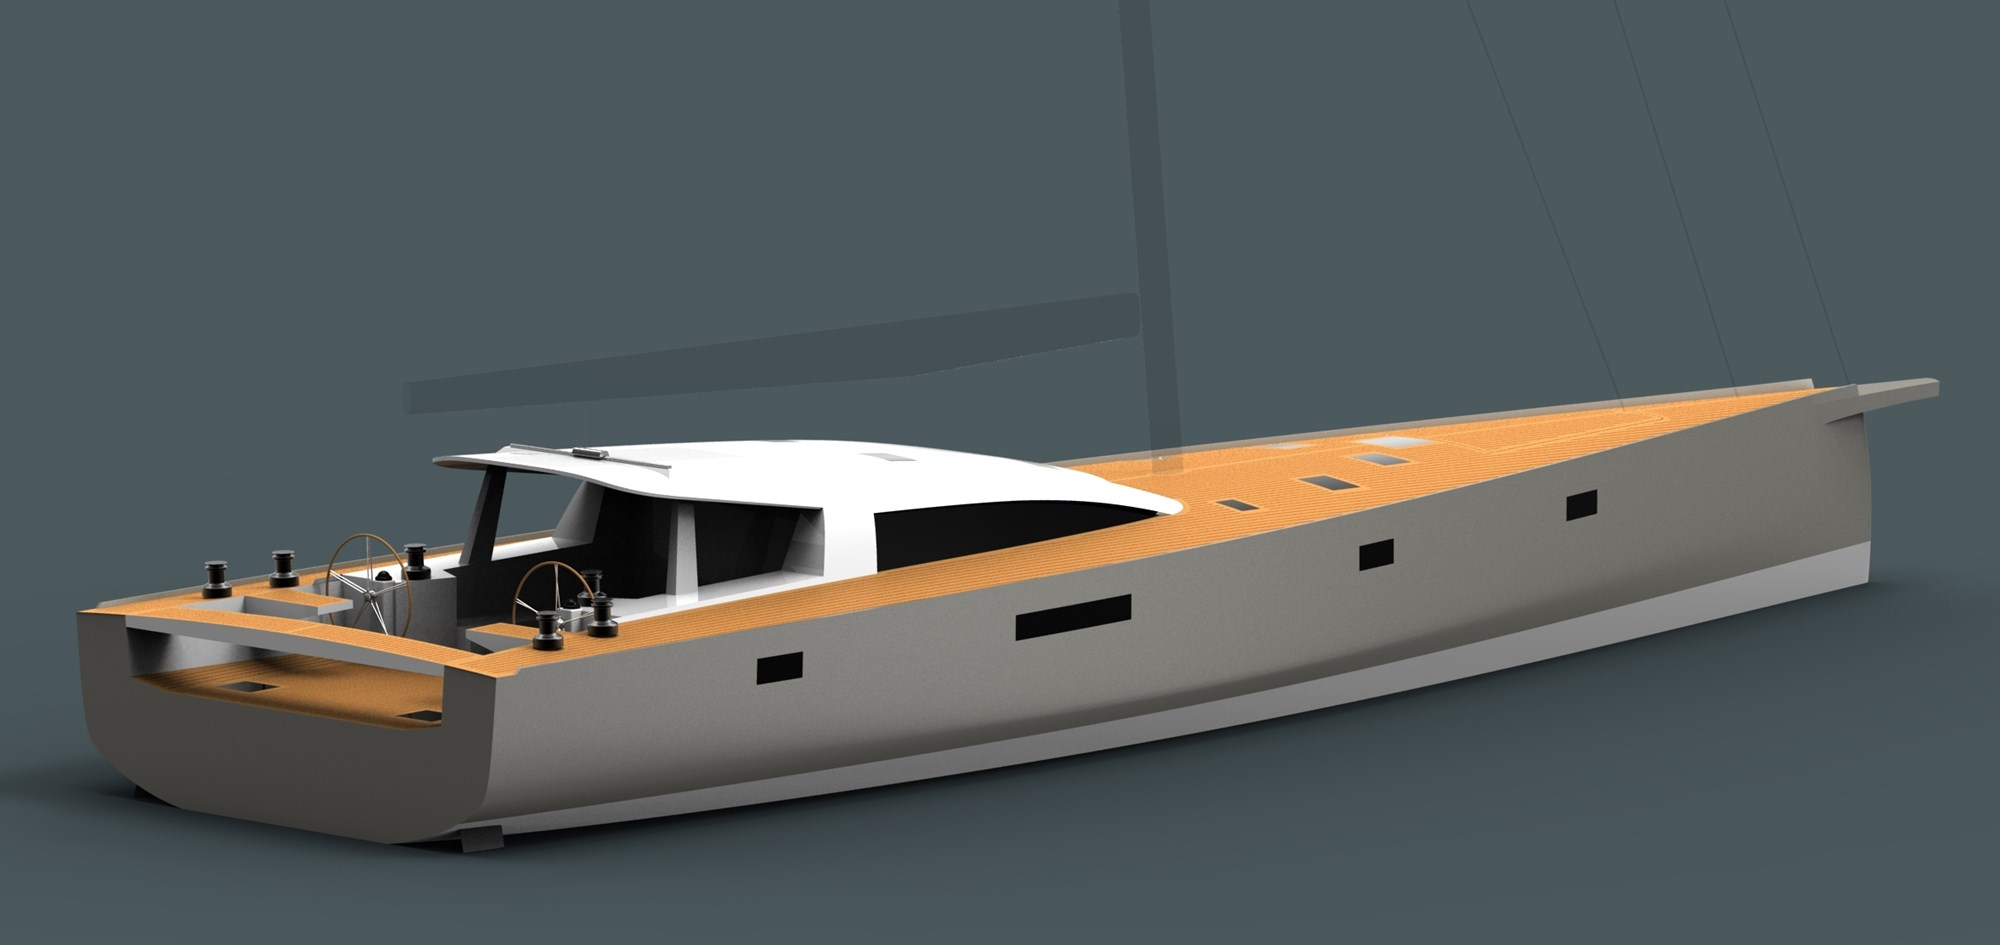 Owen Clarke Design (OC) yacht designers created this custom carbon and foam composite short-handed design for a Scandinavian client, a 23m lifting keel, performance blue water cruising sailboat.